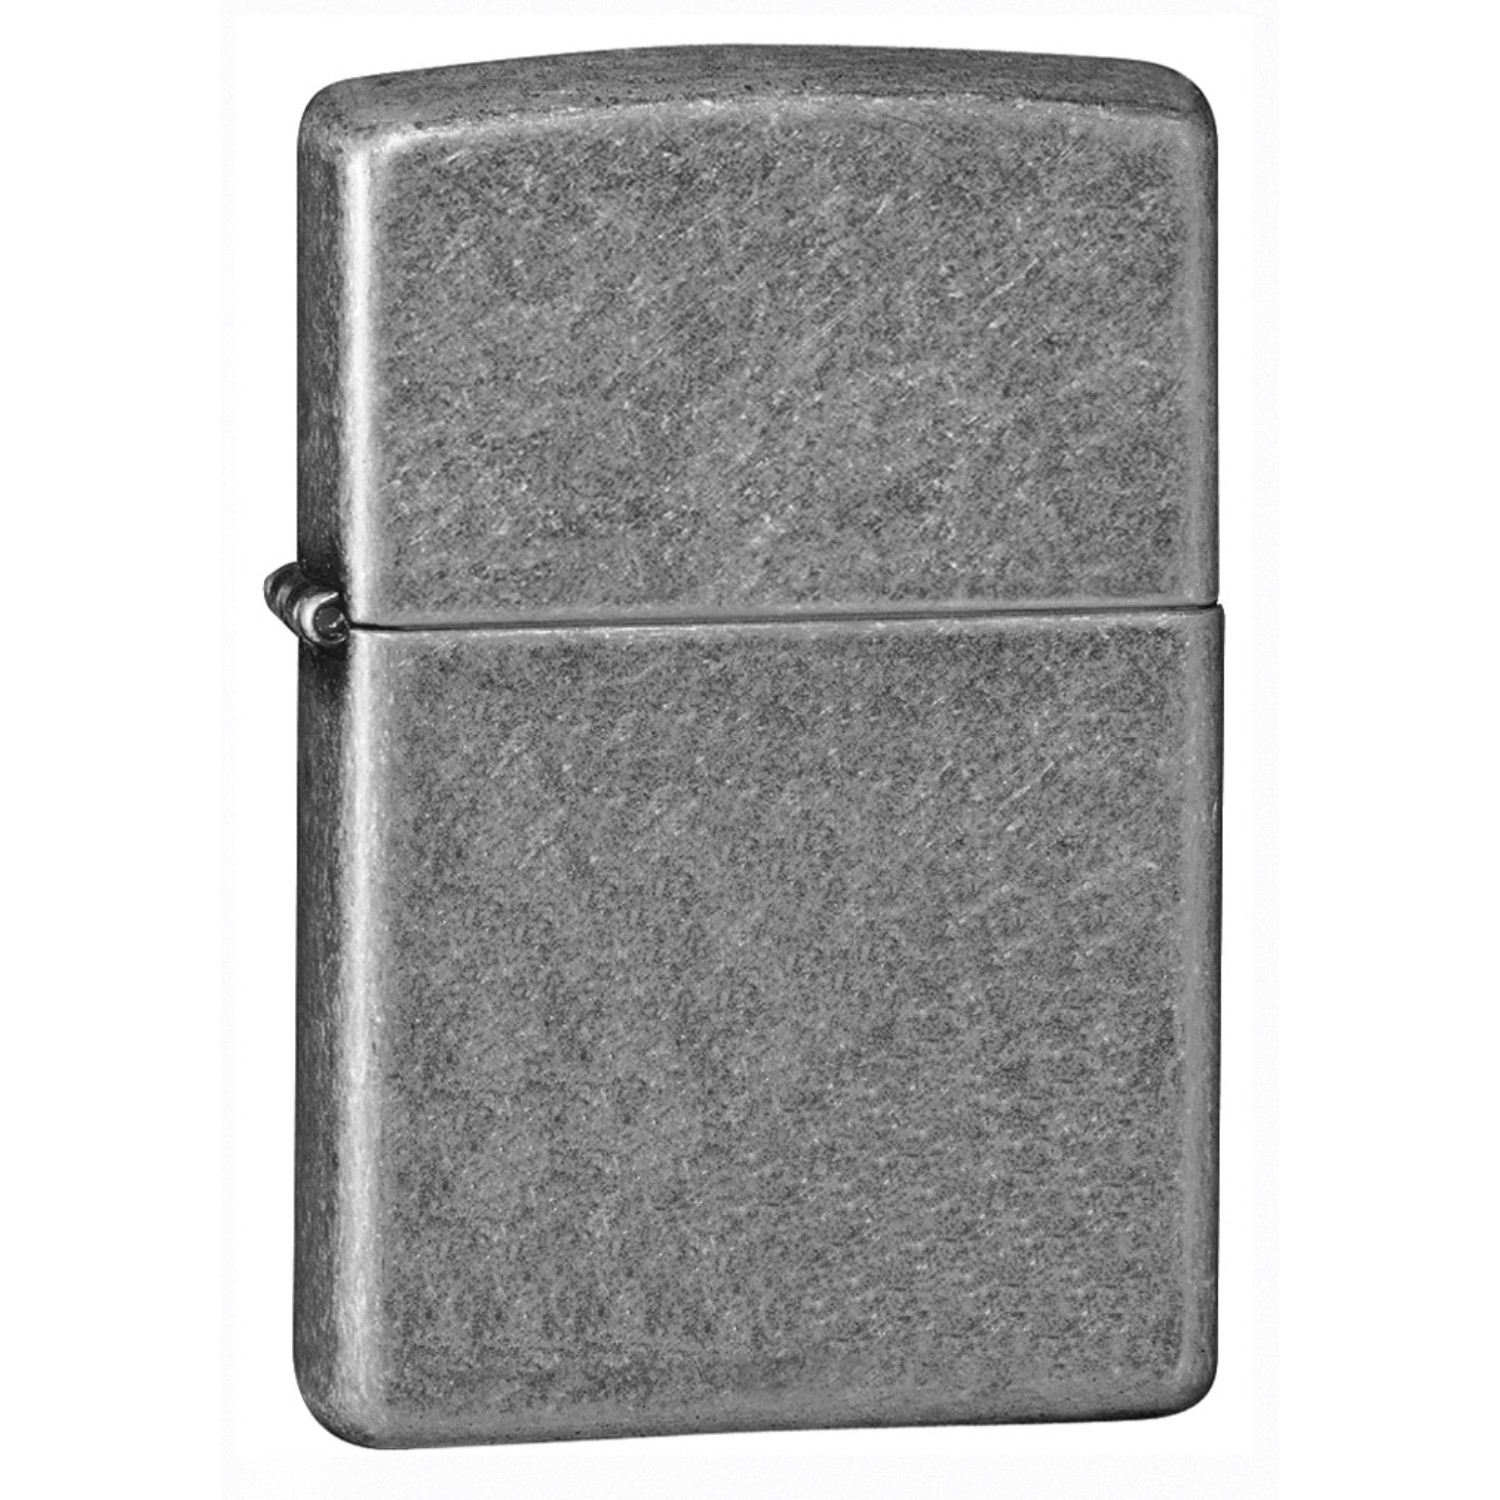 Zippo Classic Antique Silver Plate Lighter